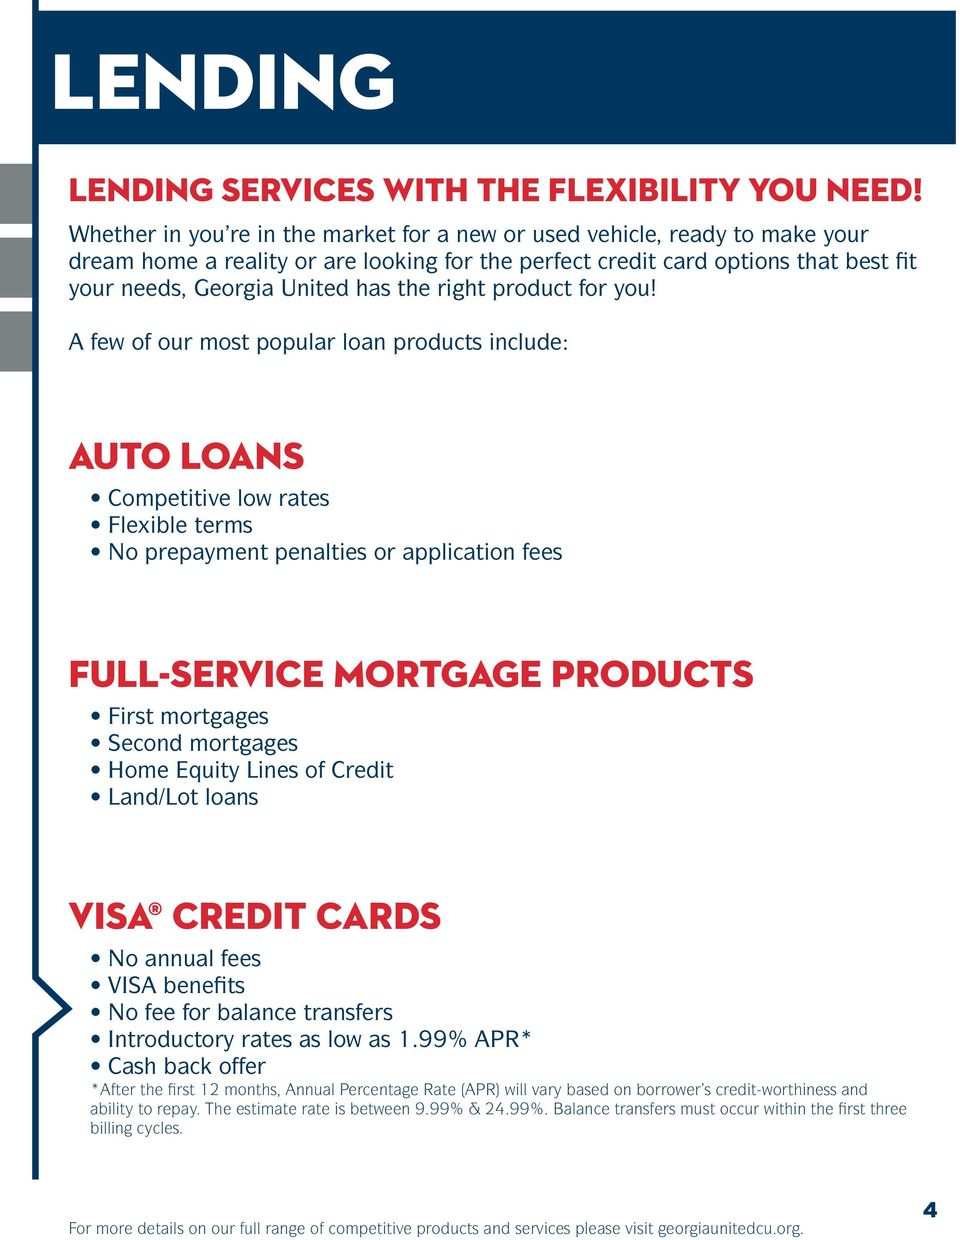 Courtesy Pay to protect your payments from insufficient dream funds, access home a to reality VISA or Debit are looking Cards, E-Statements the perfect and credit free card direct options deposit.